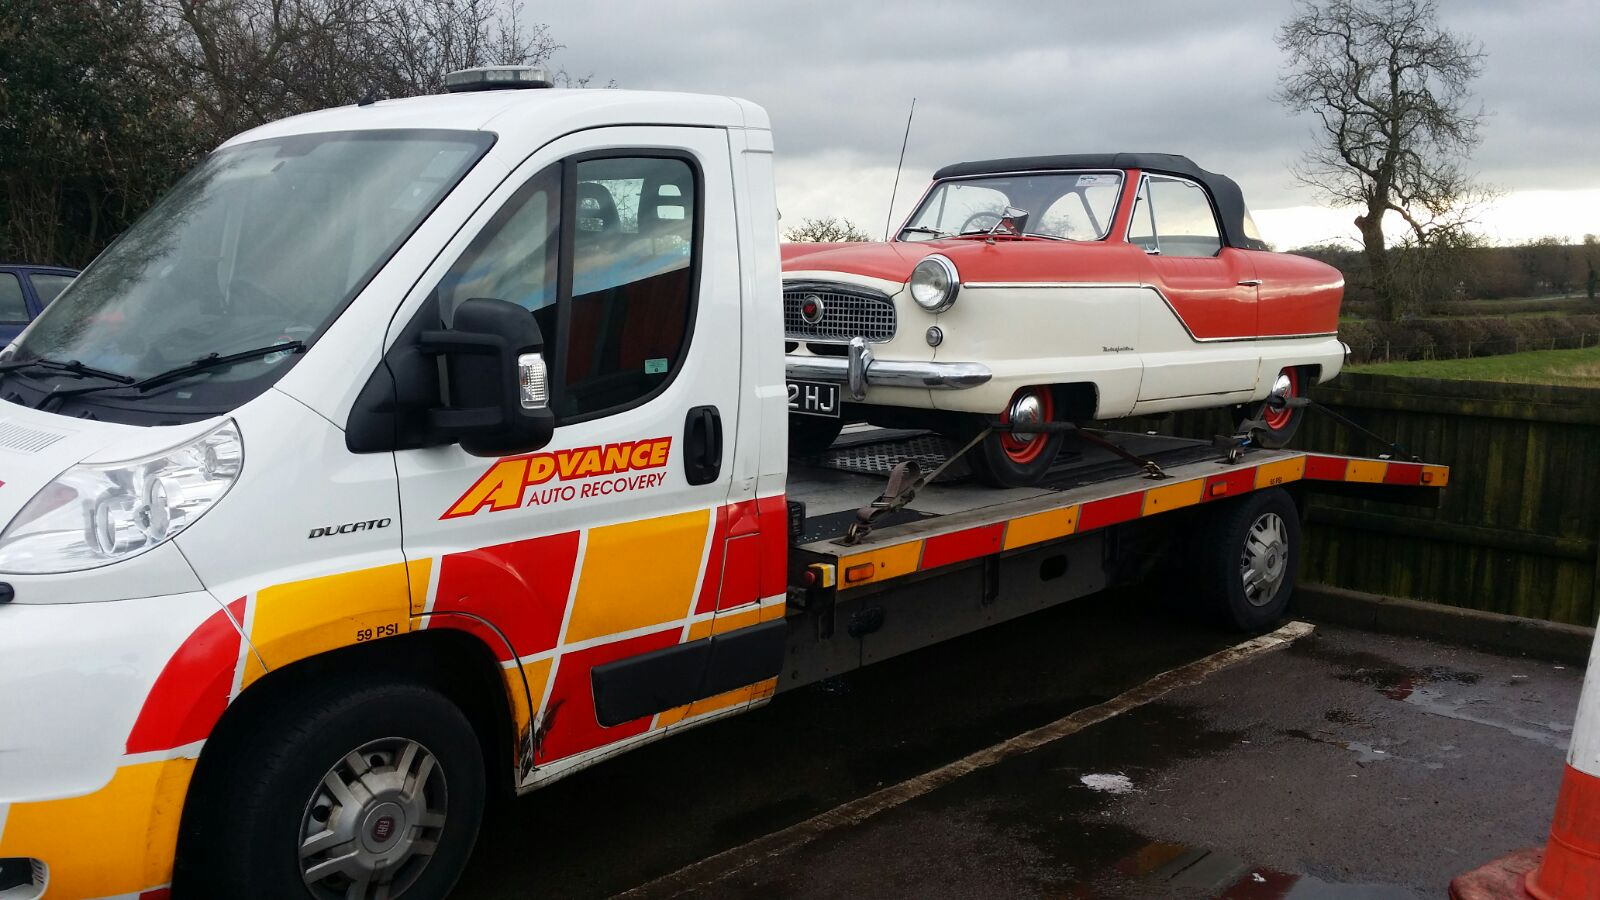 Vintage Car Recovery